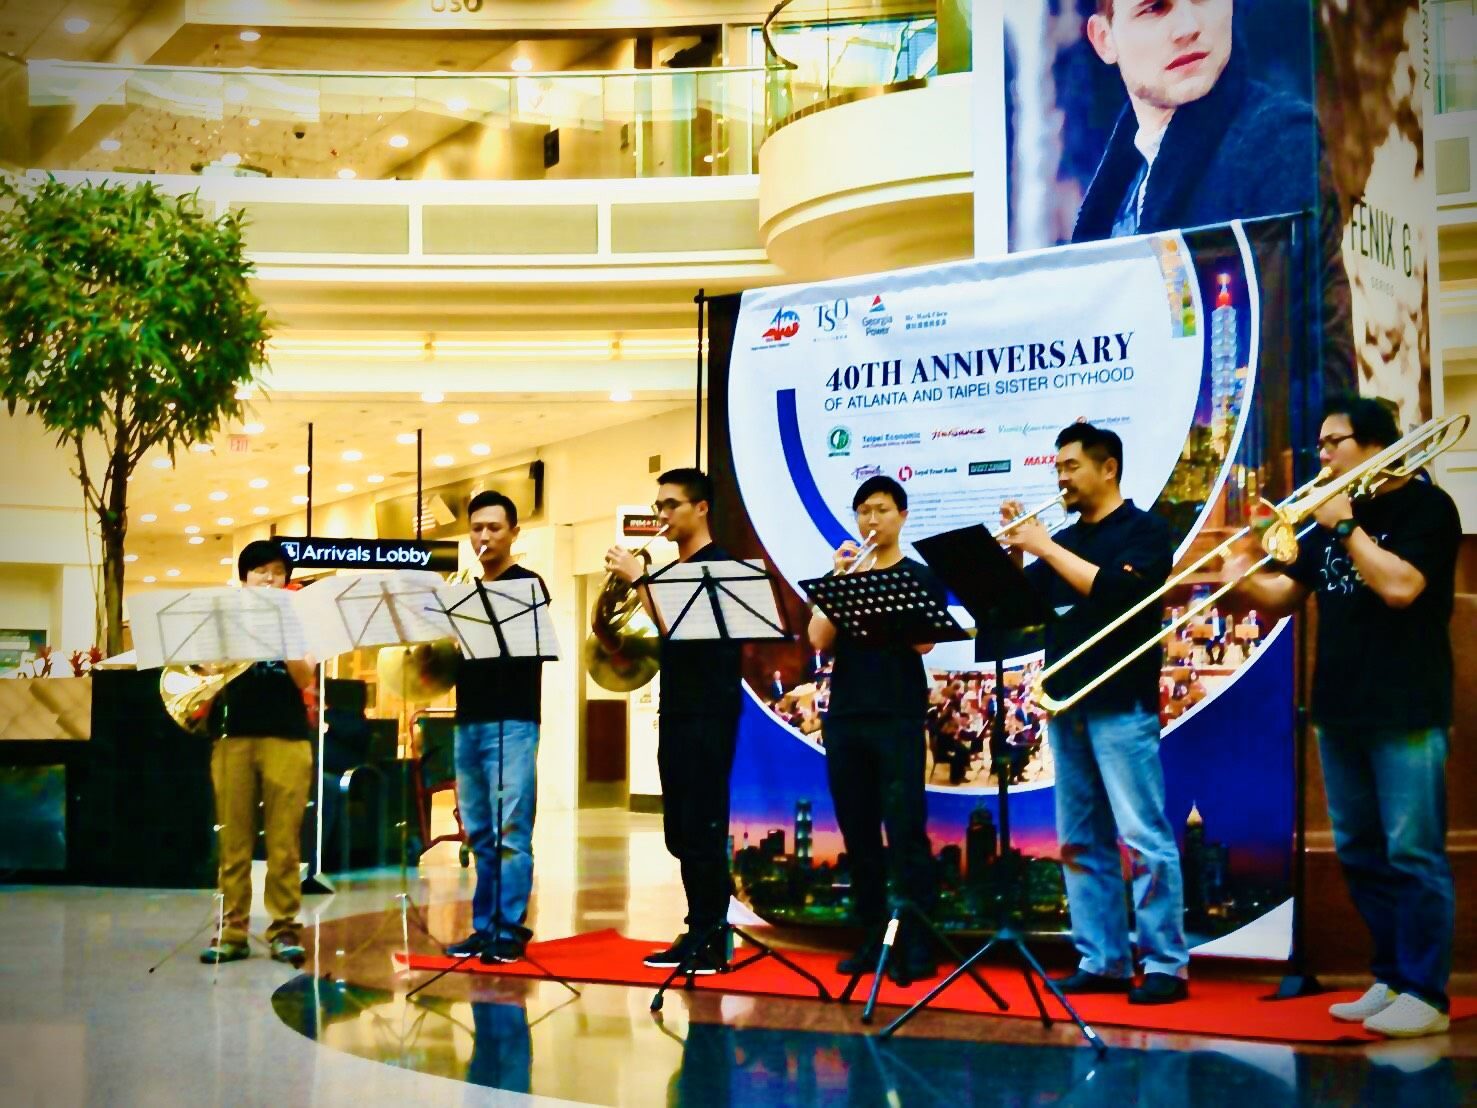 The Taipei Symphony Orchestra's brass sextet gave a surprising performance at the Atlanta International Airport.